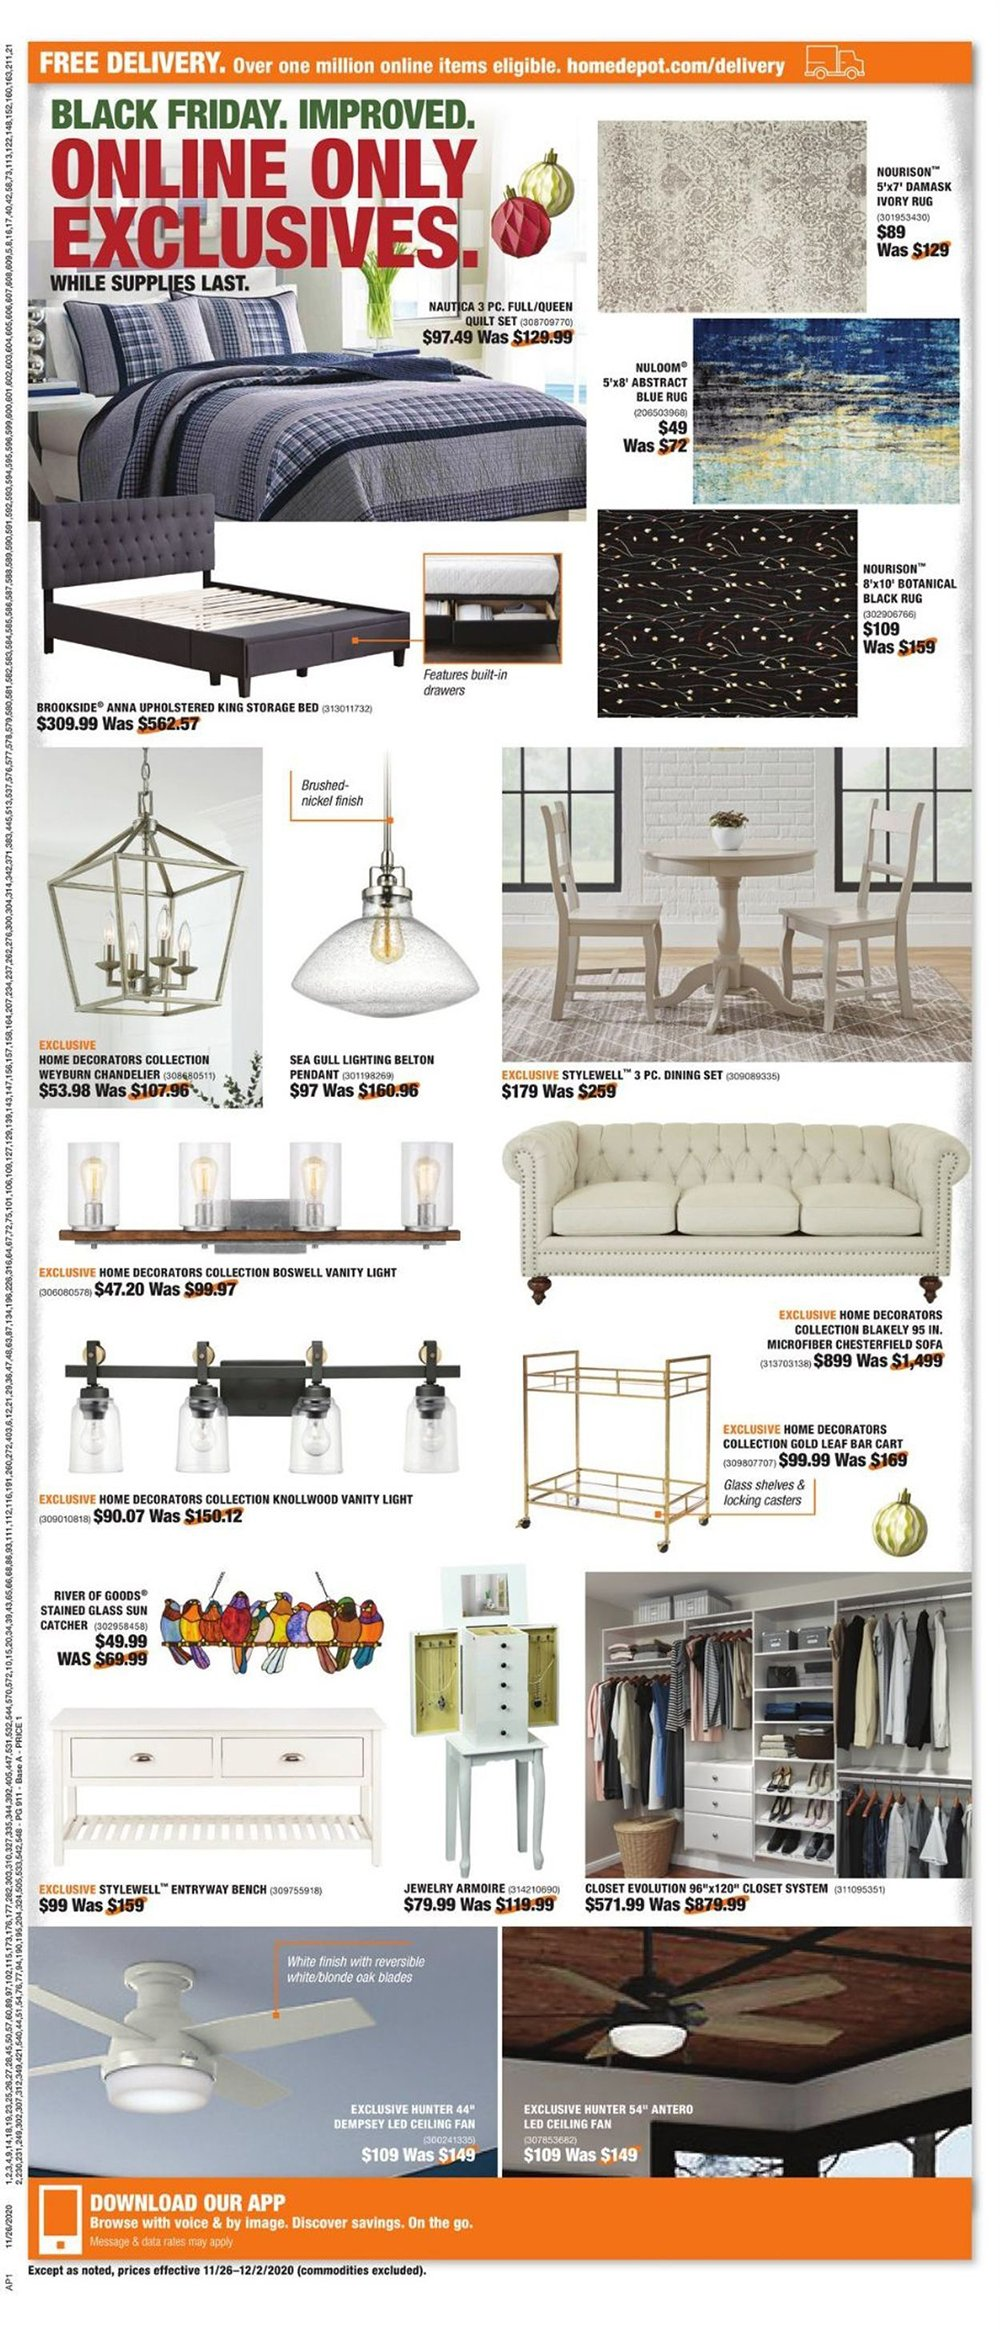 Home Depot Cyber Monday 2020 Page 2